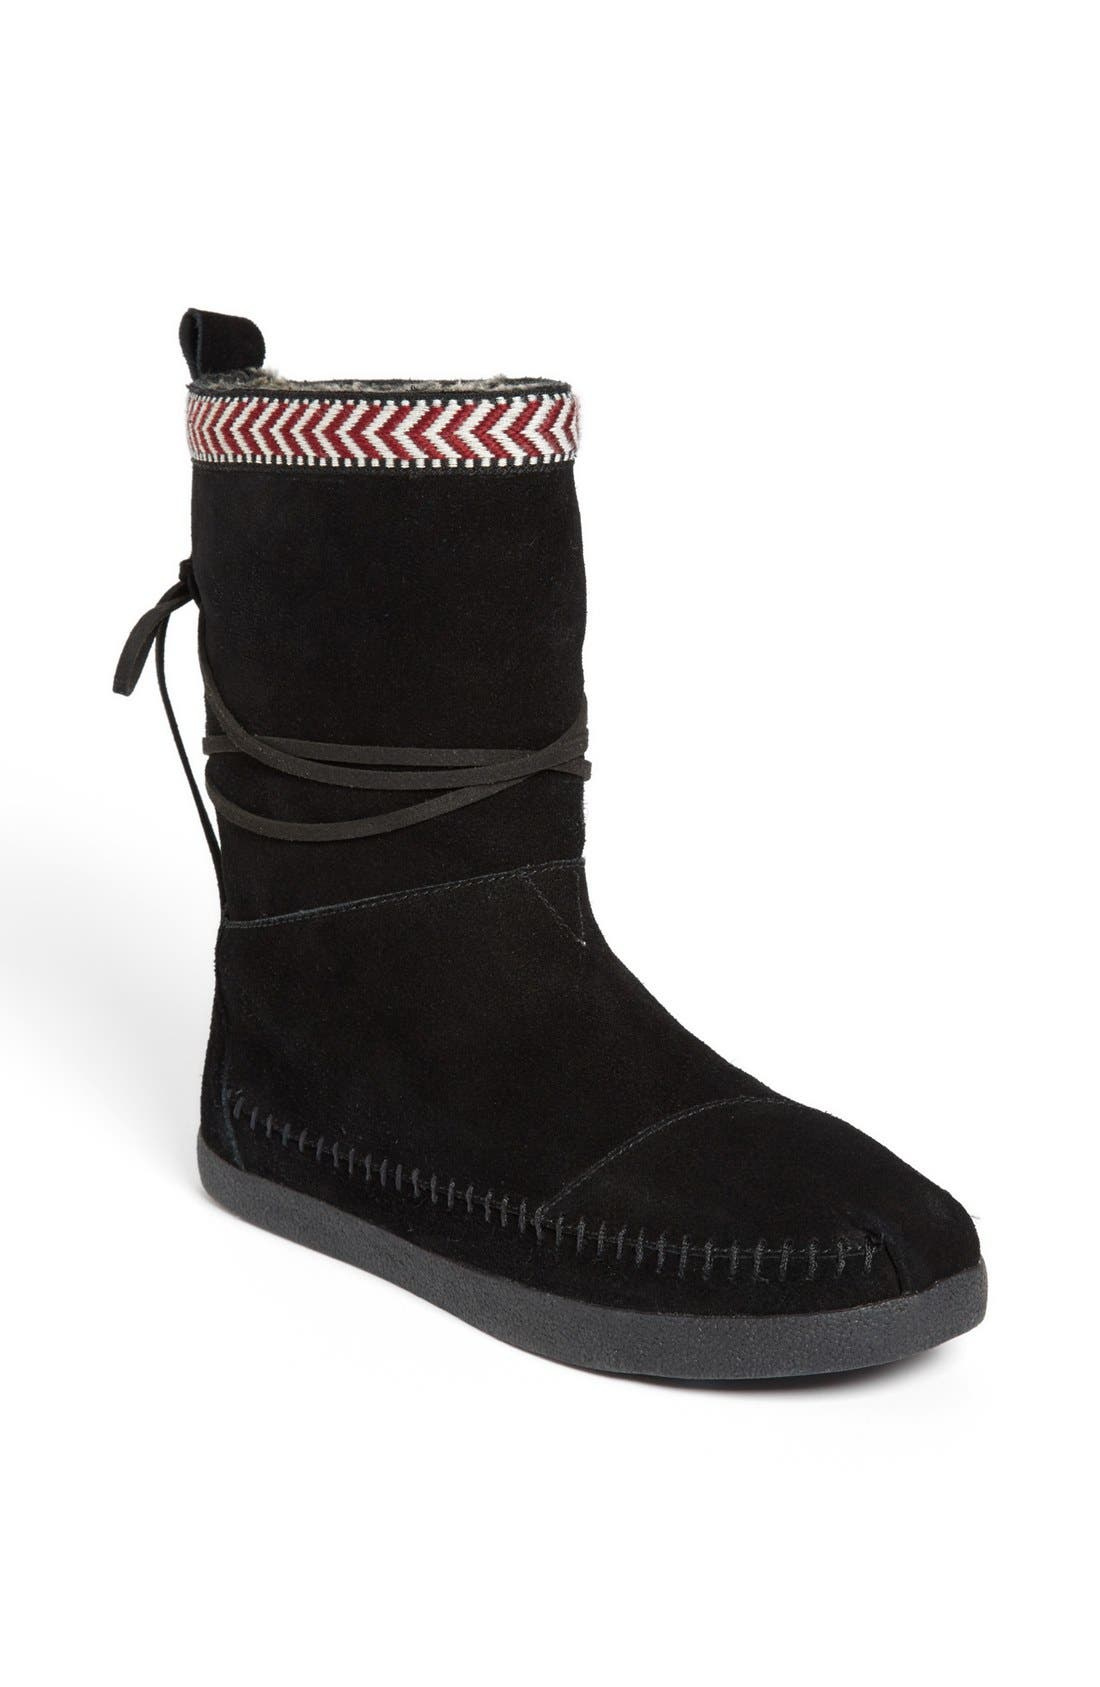 Alternate Image 1 Selected - TOMS 'Nepal' Boot (Women)